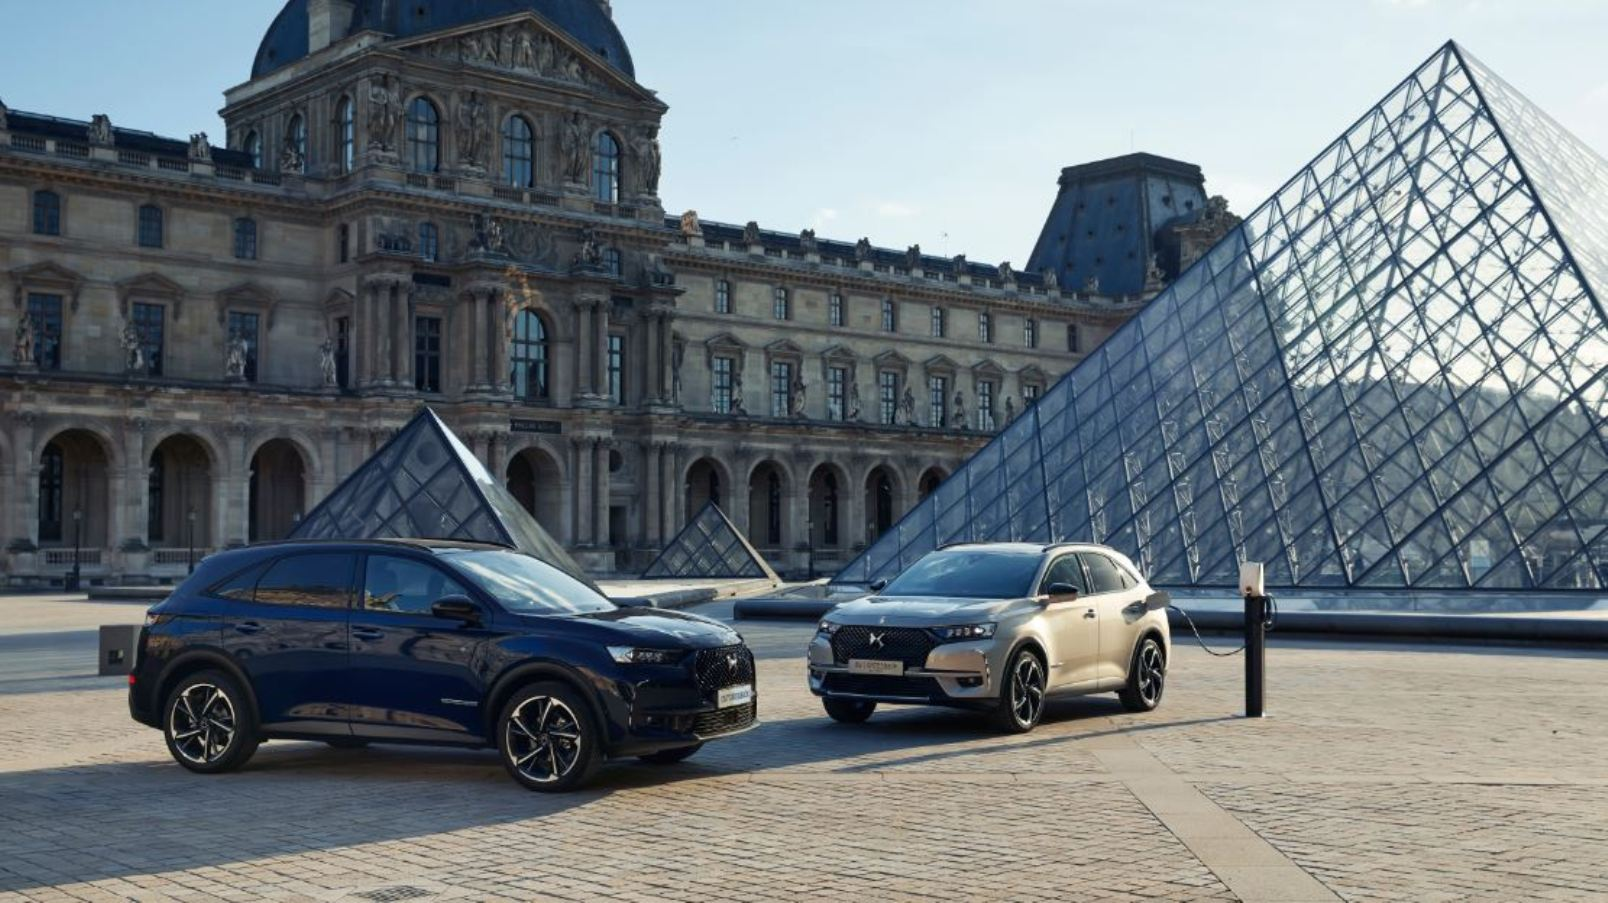 Ds 7 Crossback Louvre (6)